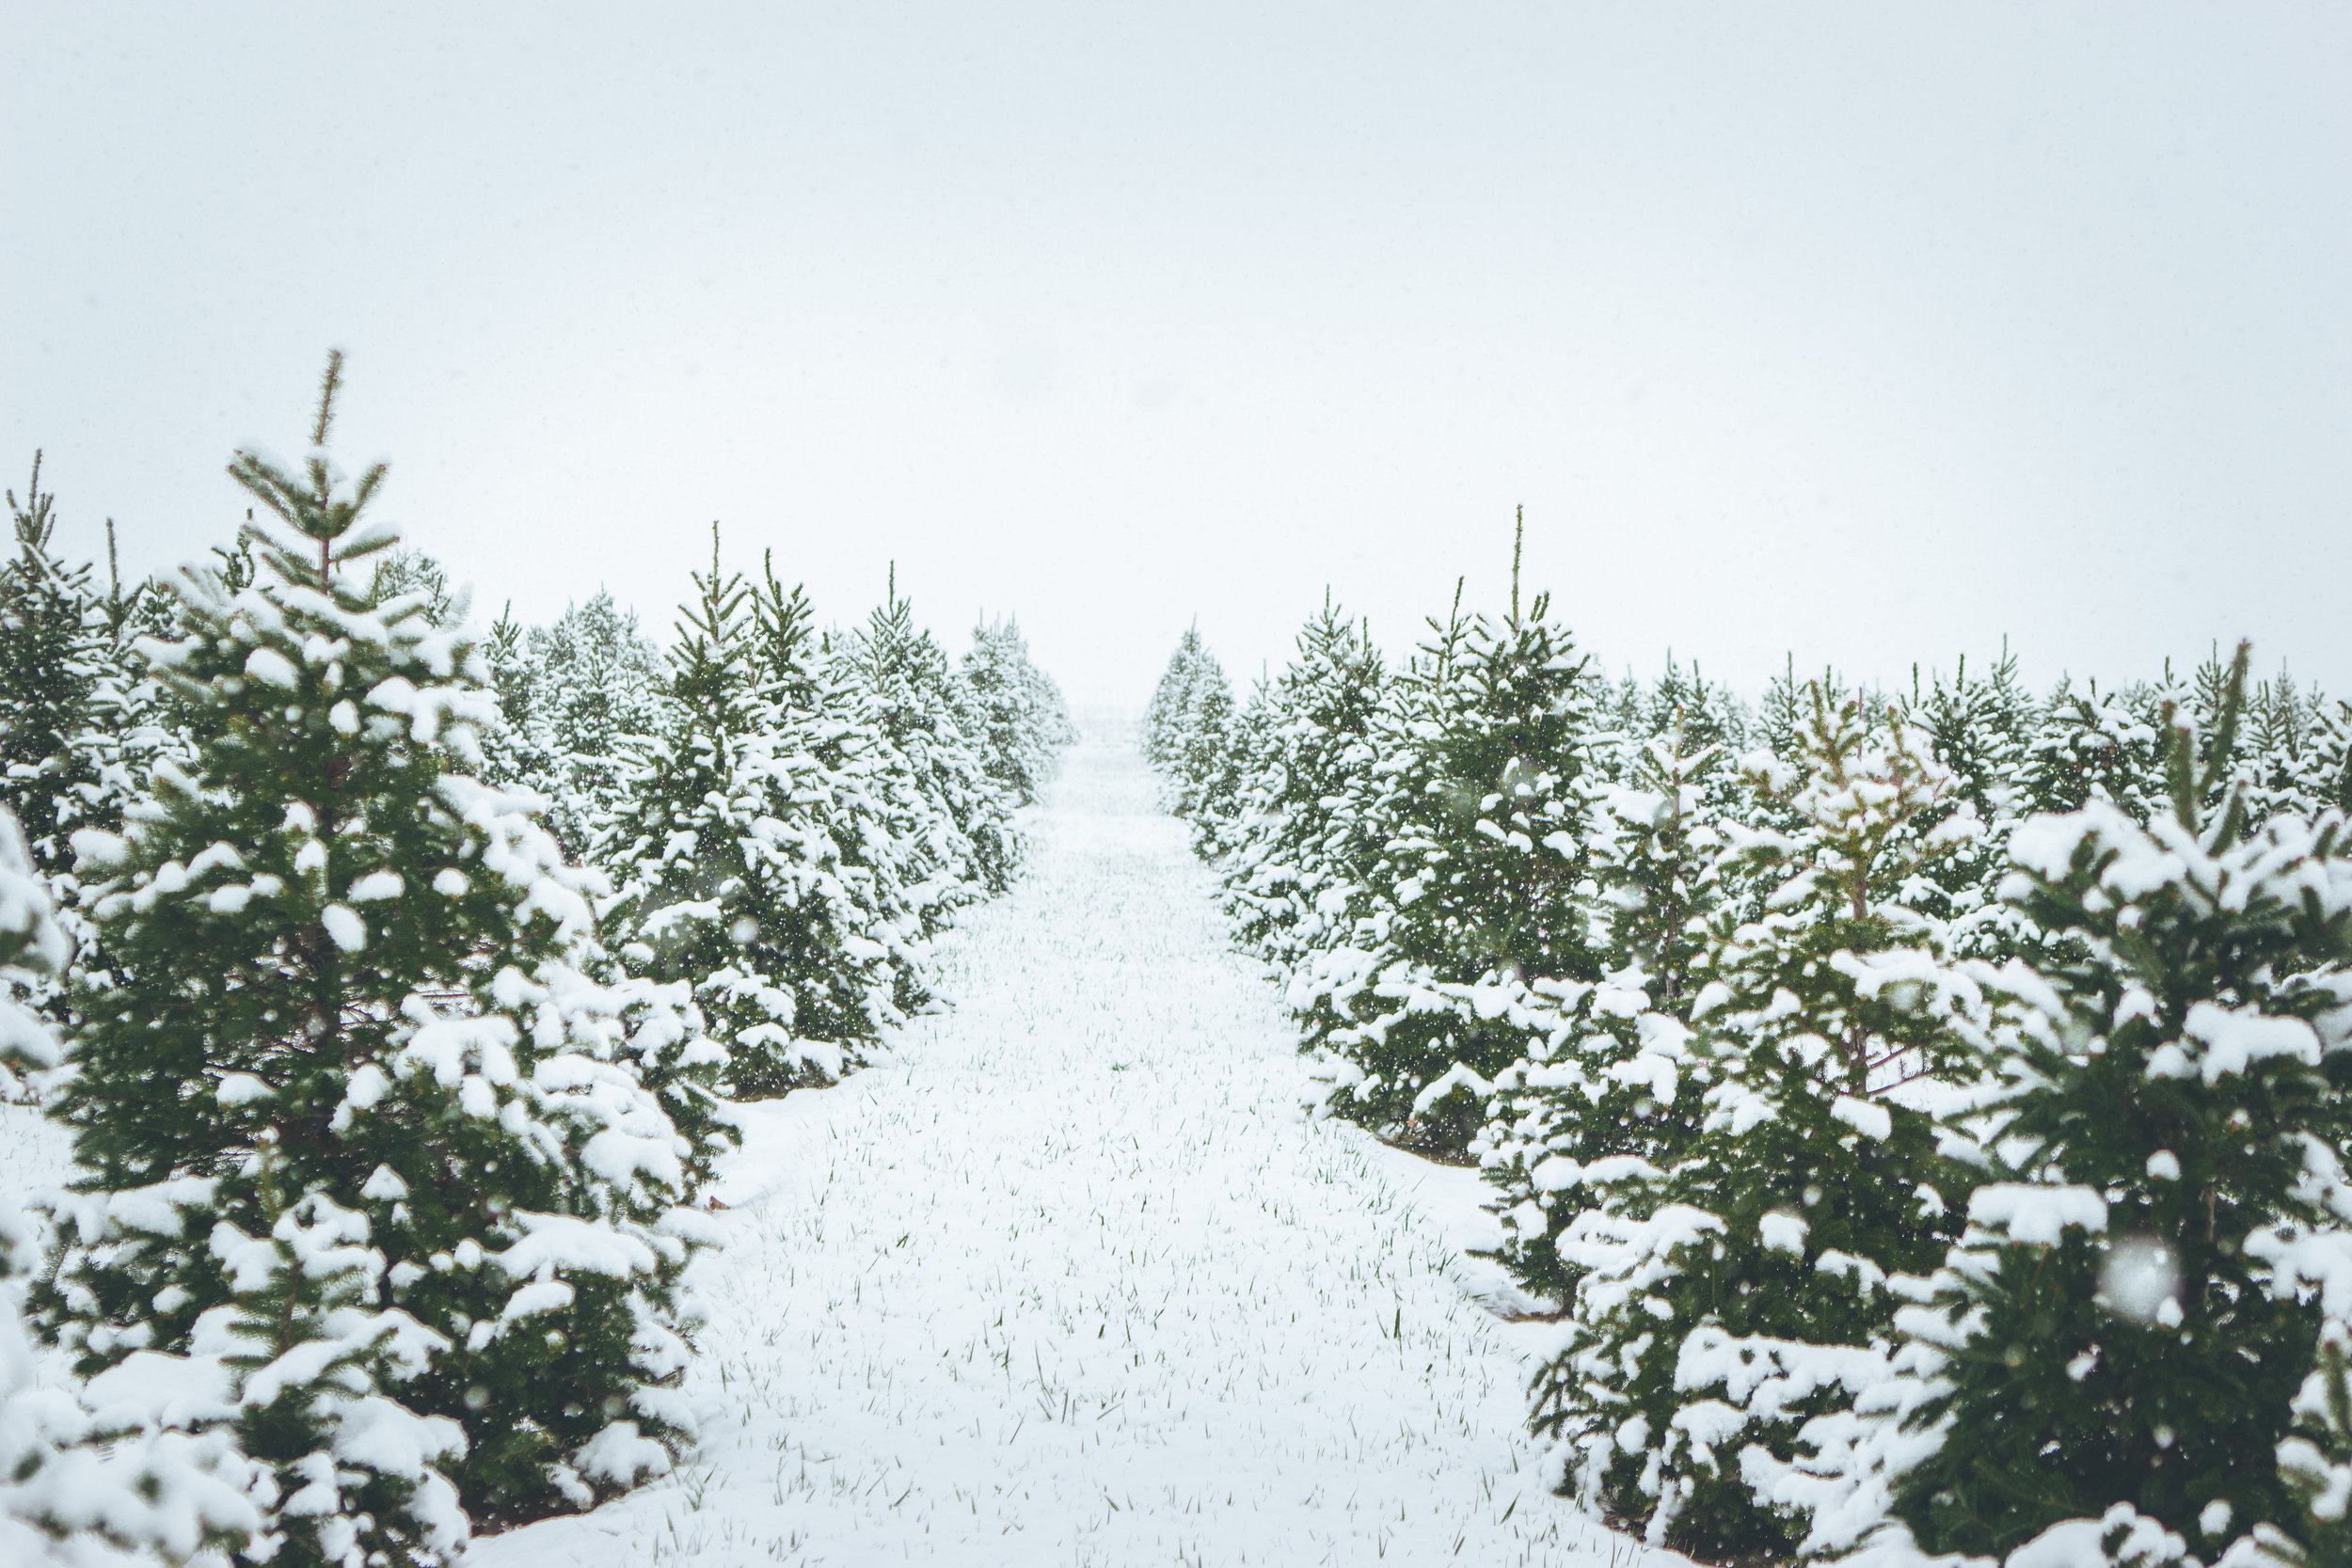 Rows and rows of hand-trimmed trees at bomke's patch! :)